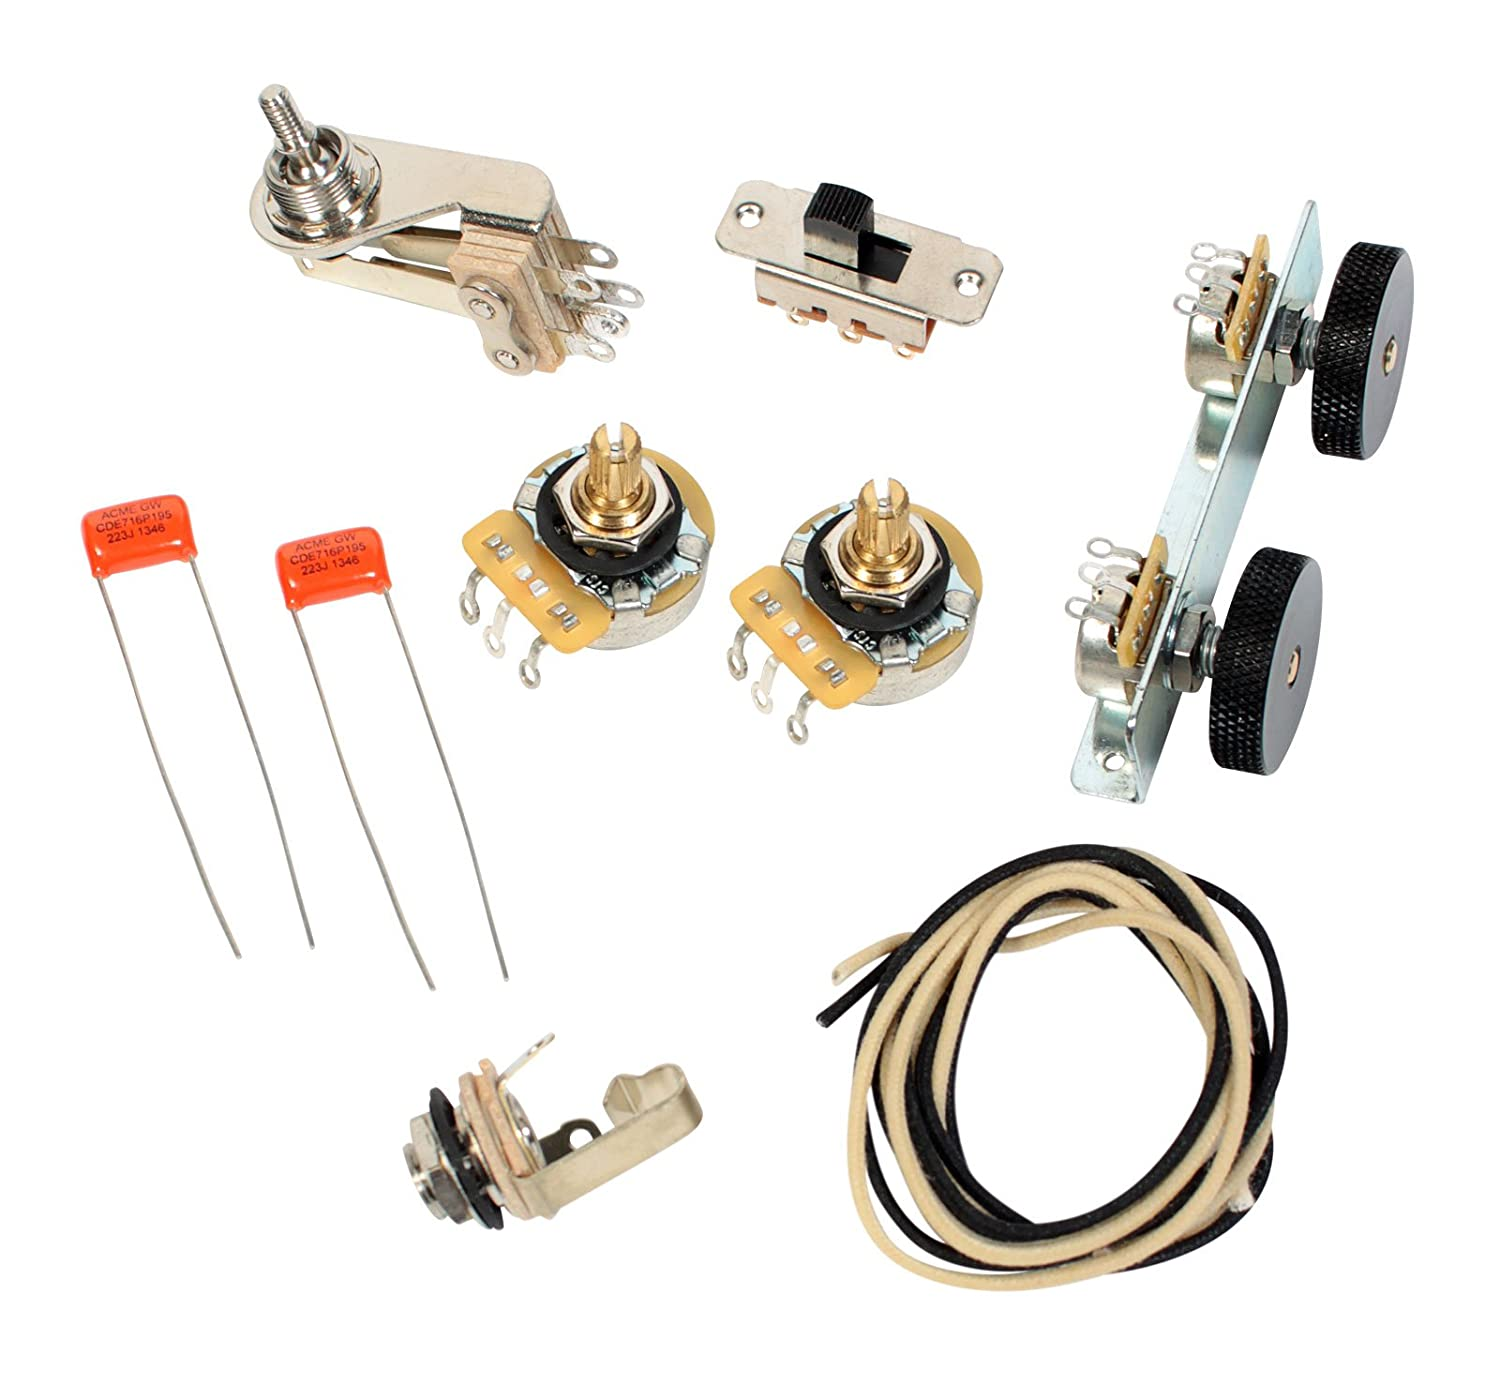 Amazon.com: Fender Vintage Jazzmaster Wiring Kit - Pots Switch Slider Caps  Bracket Diagram: Musical Instruments